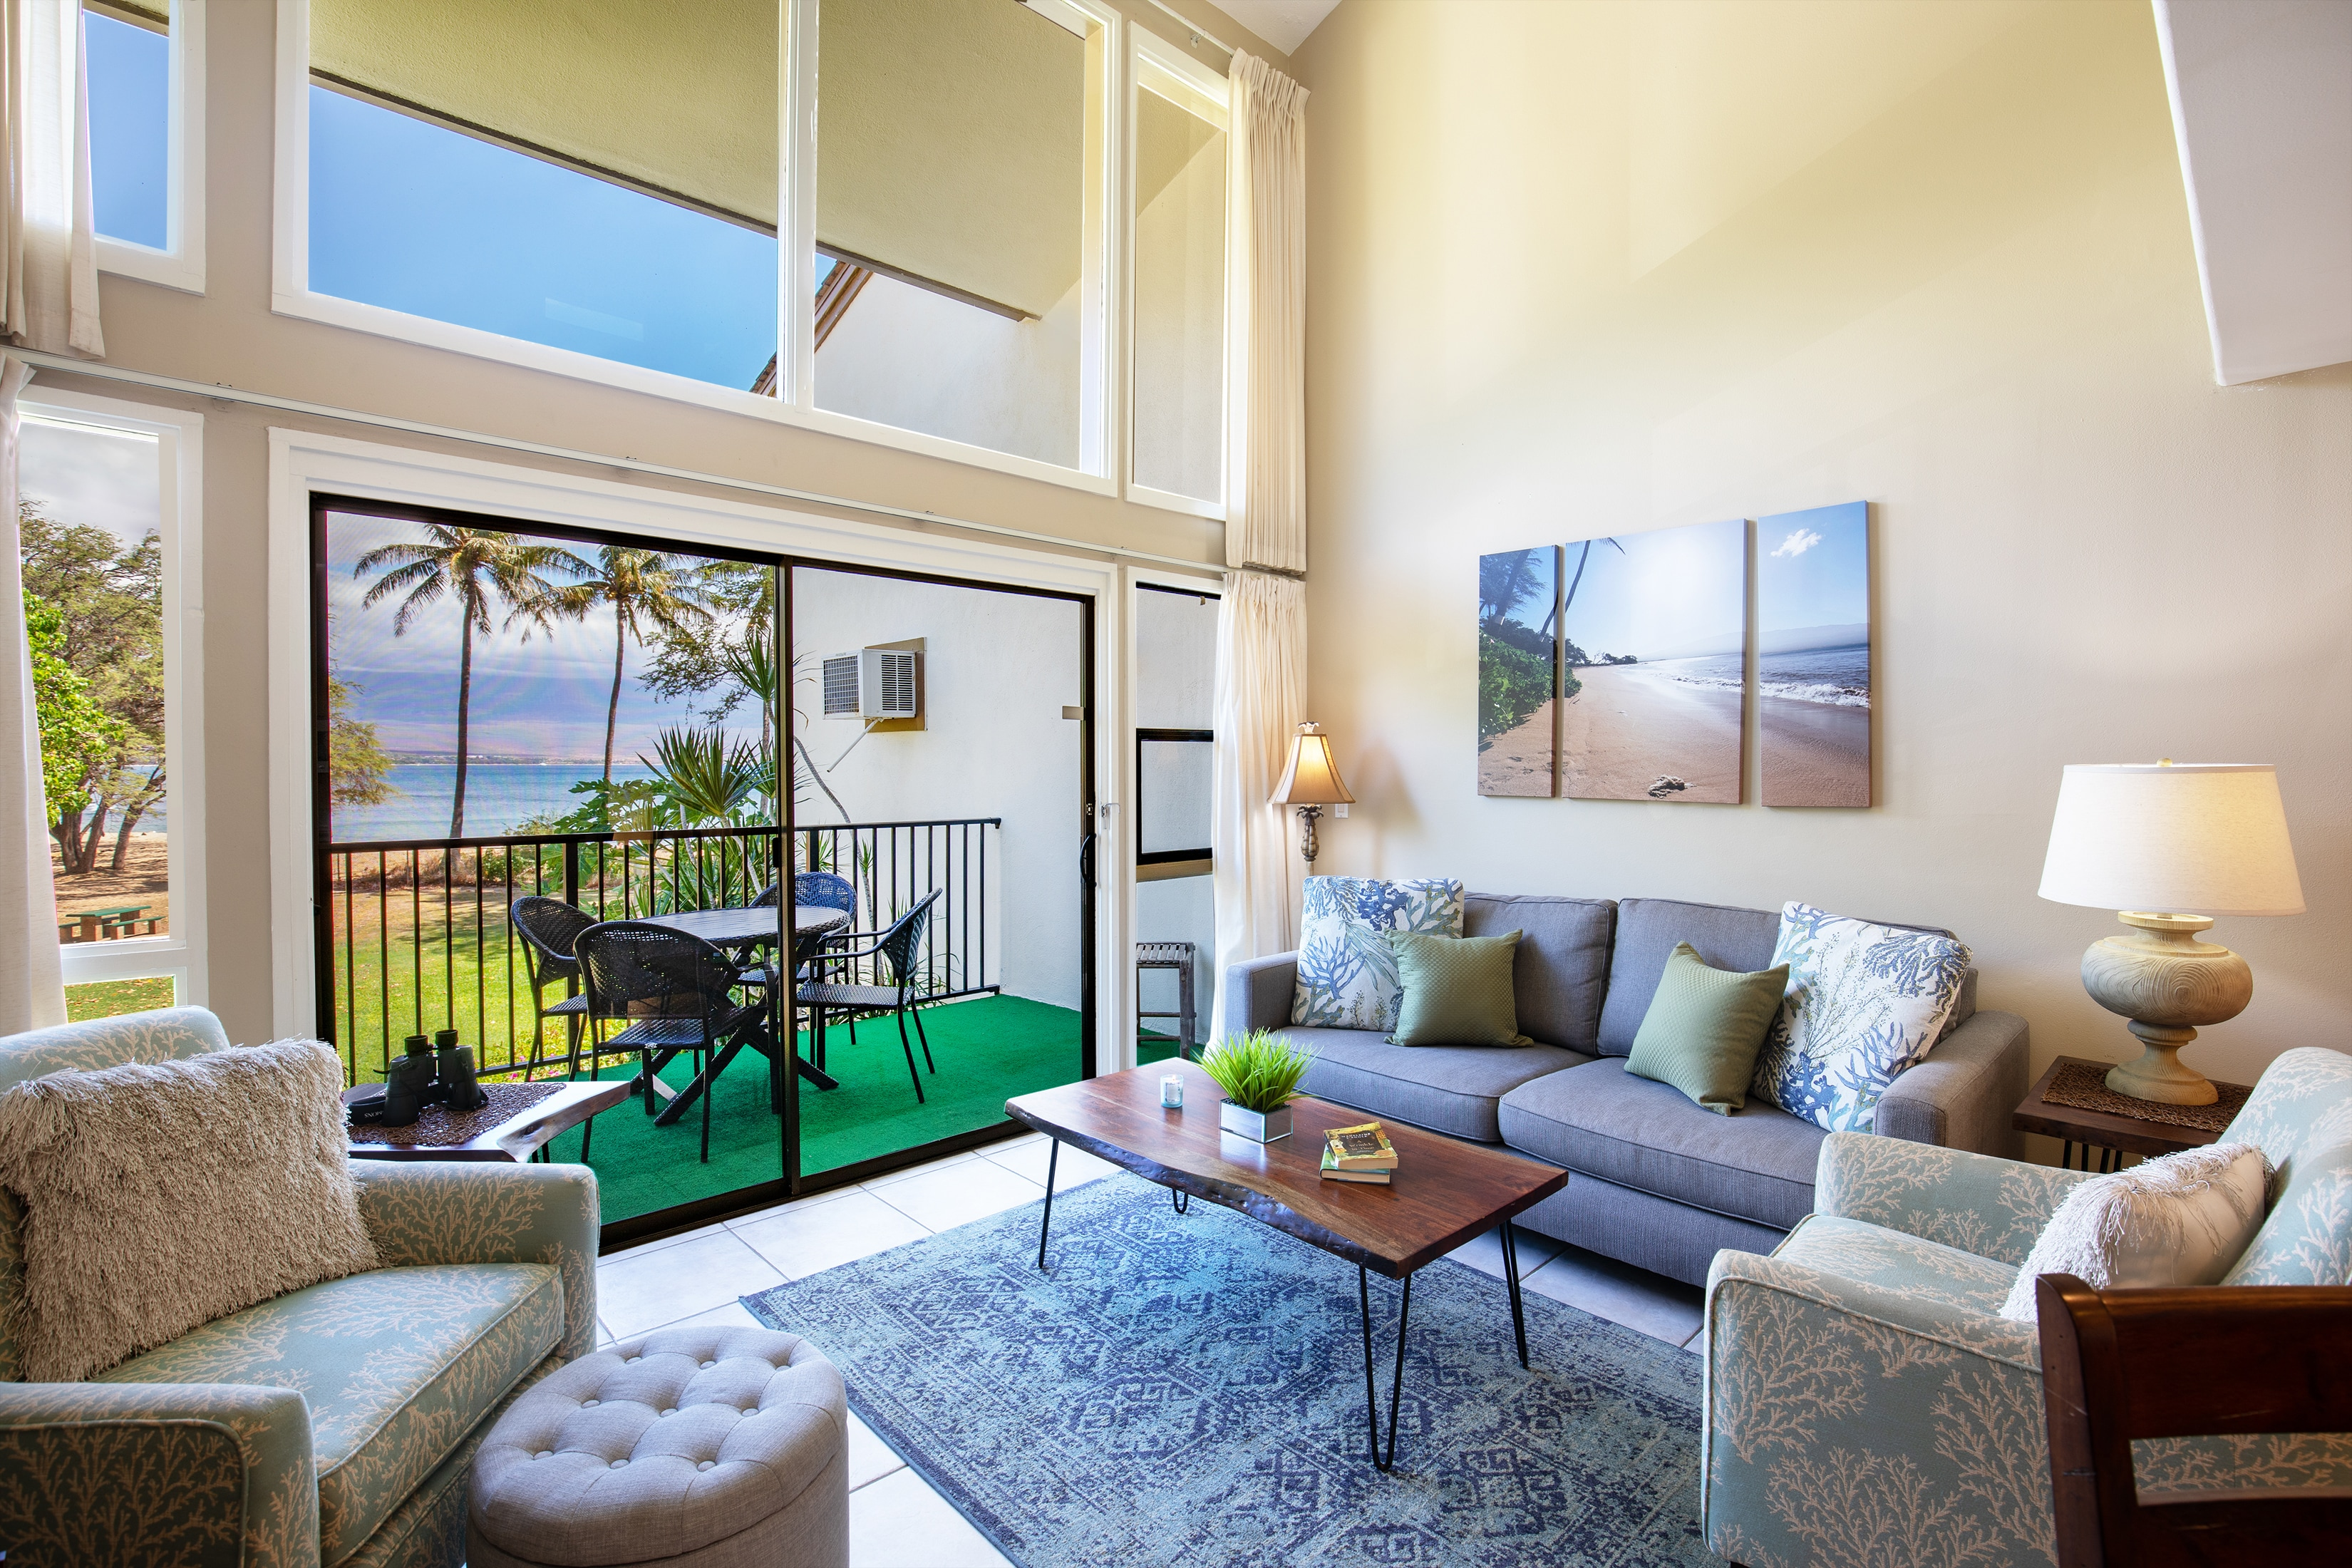 Property Image 1 - Remarkable Maui Getaway with Modern Beach Inspired Decor *Makani A Kai B9